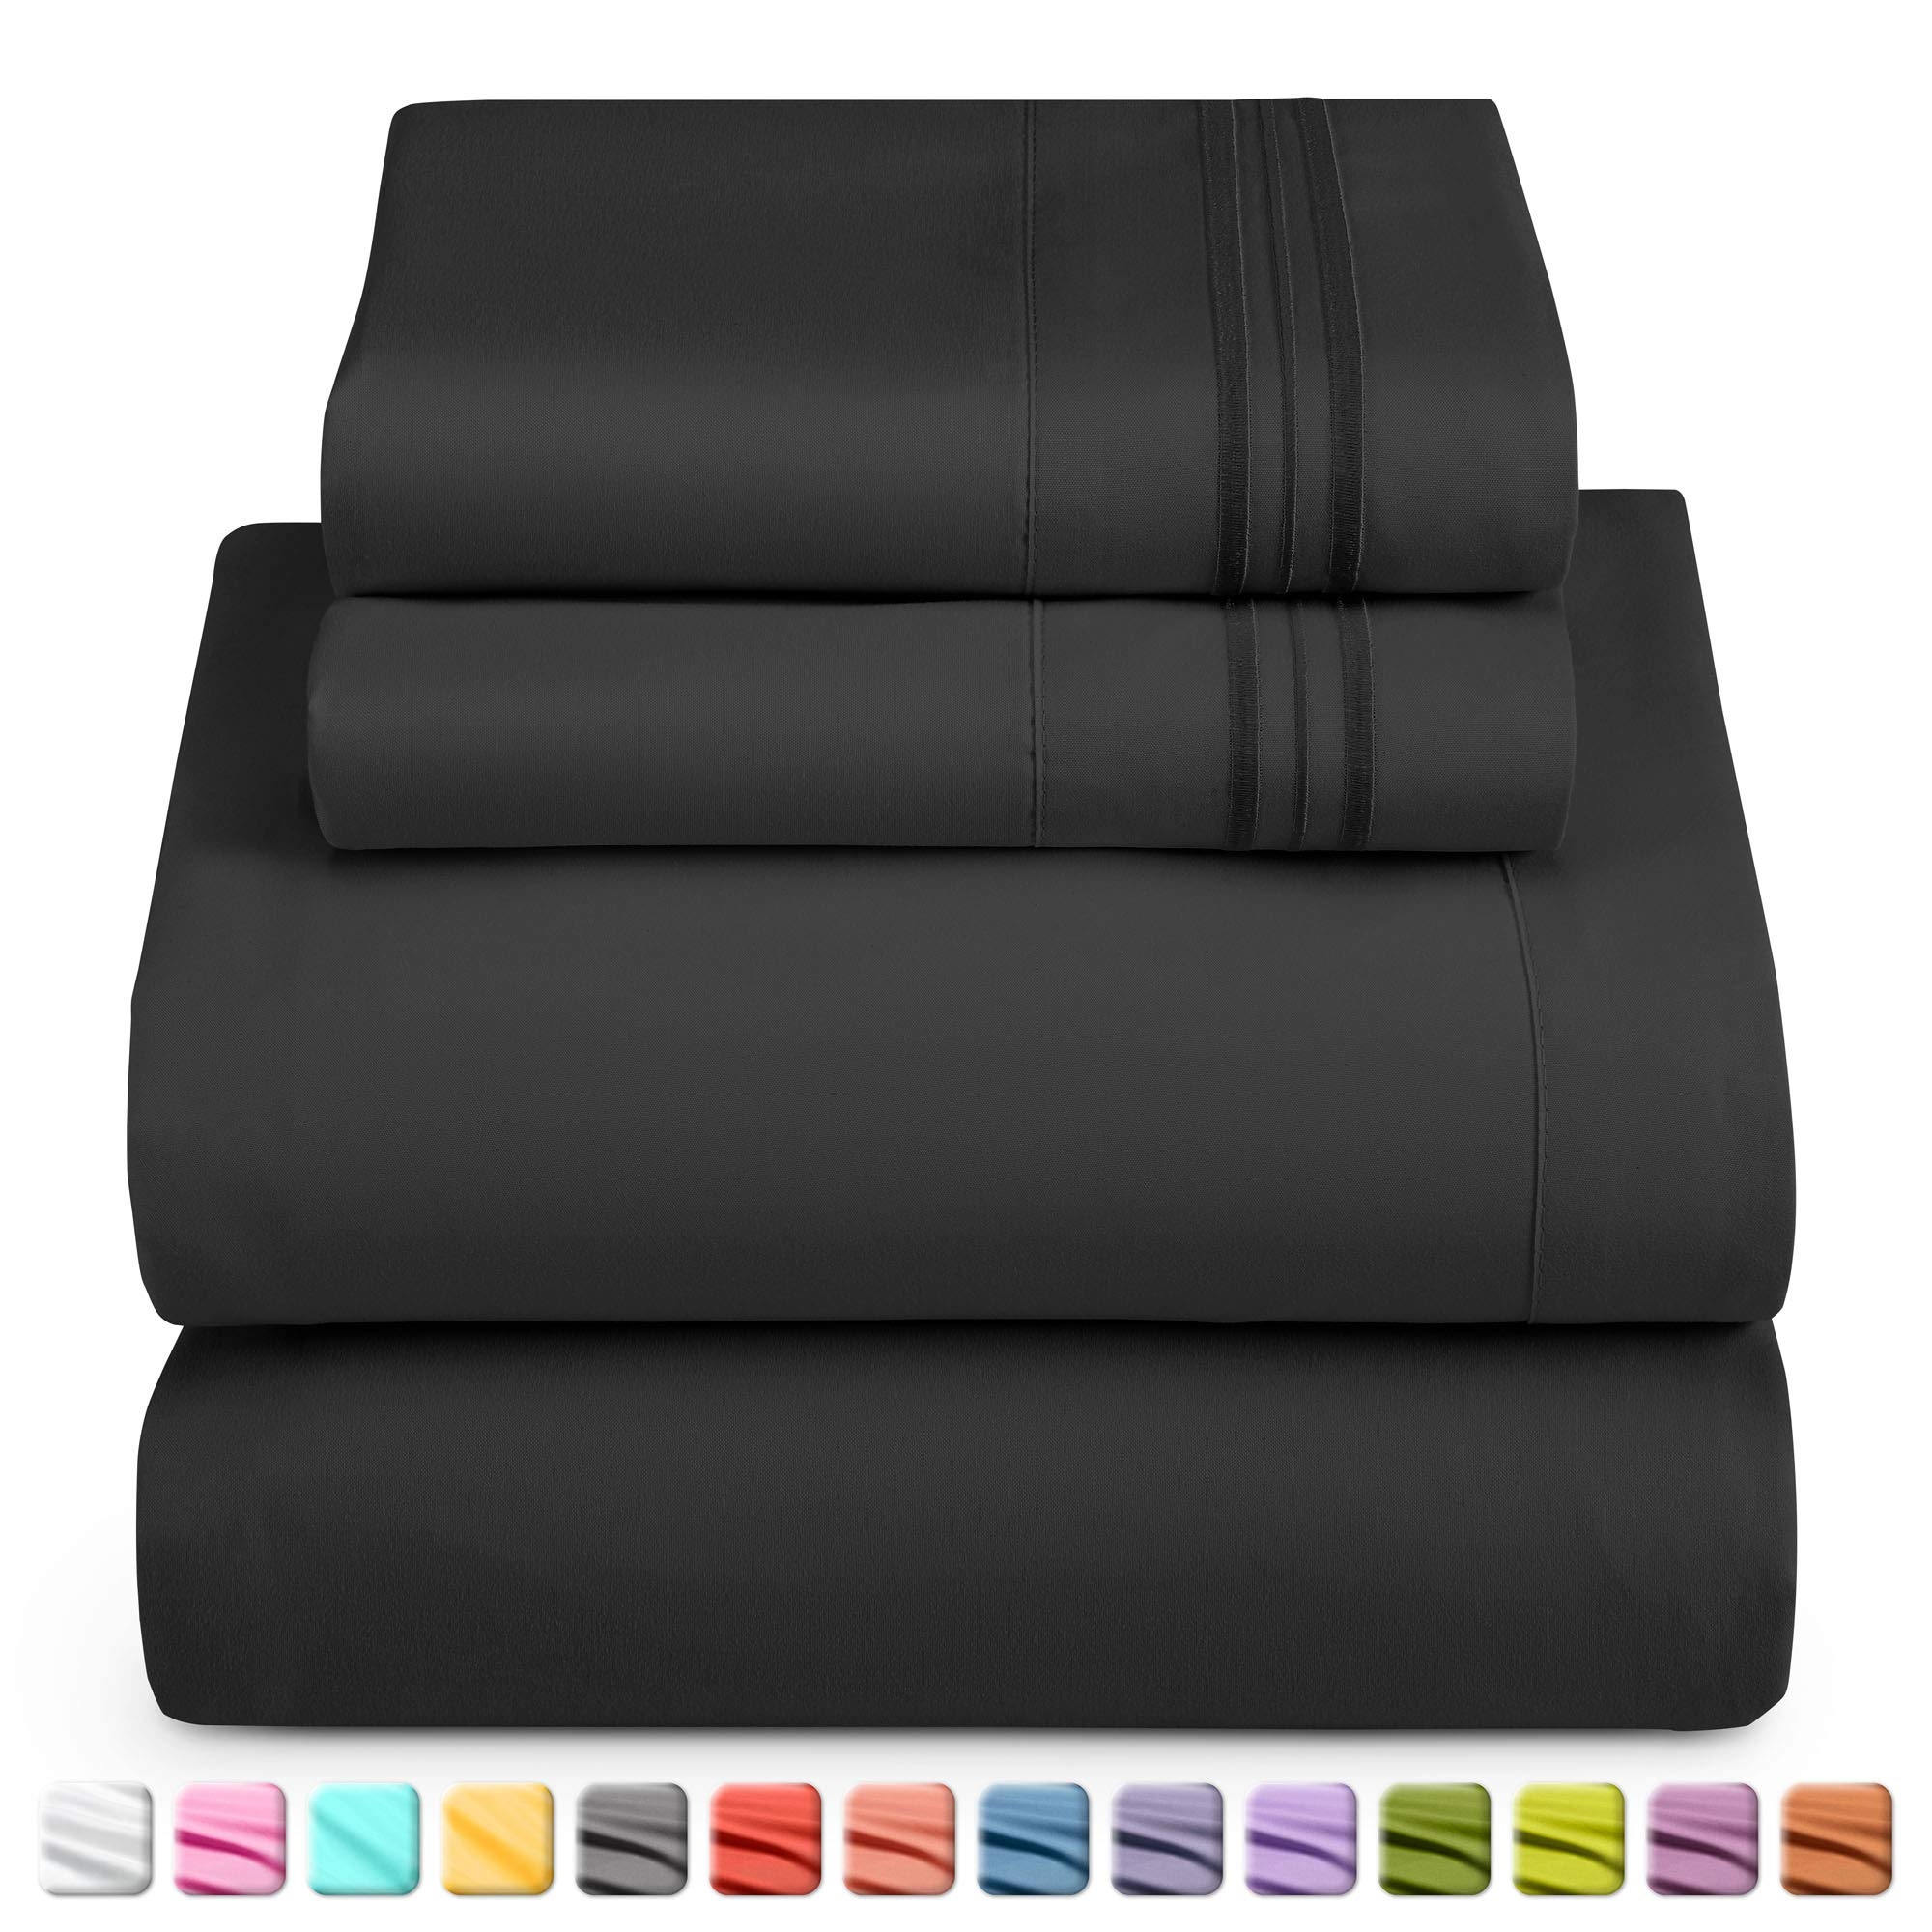 Nestl Deep Pocket Full Sheets: 4 Piece Full Size Bed Sheets with Fitted Sheet, Flat Sheet, Pillow Cases - Extra Soft Microfiber Bedsheet Set with Deep Pockets for Full Sized Mattress - Black